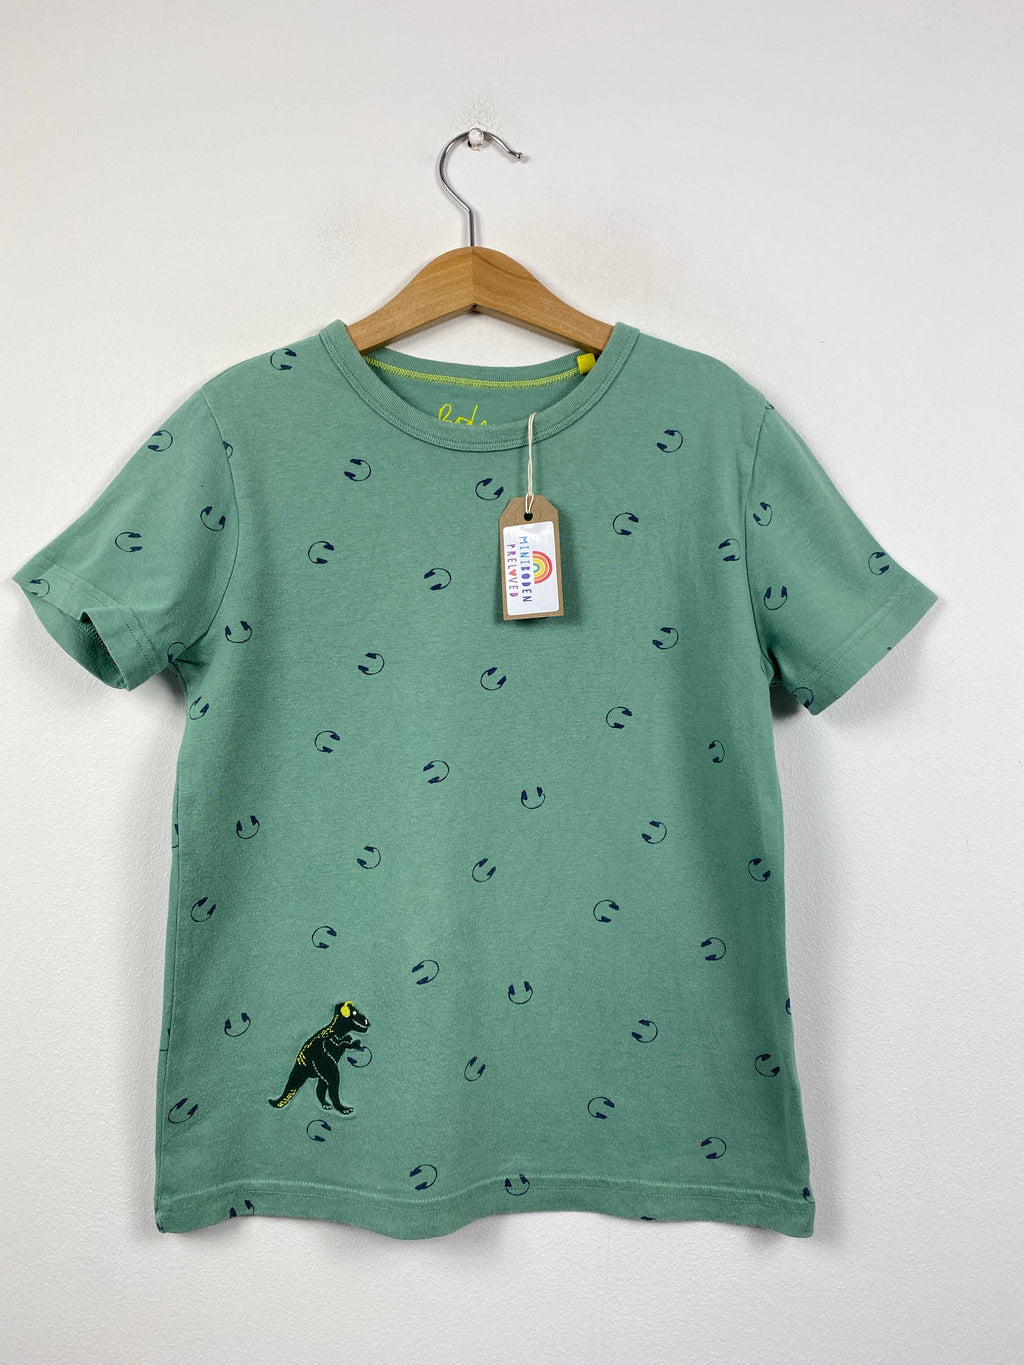 Green Embroidered Dinosaur Design Top (8-9 Years)